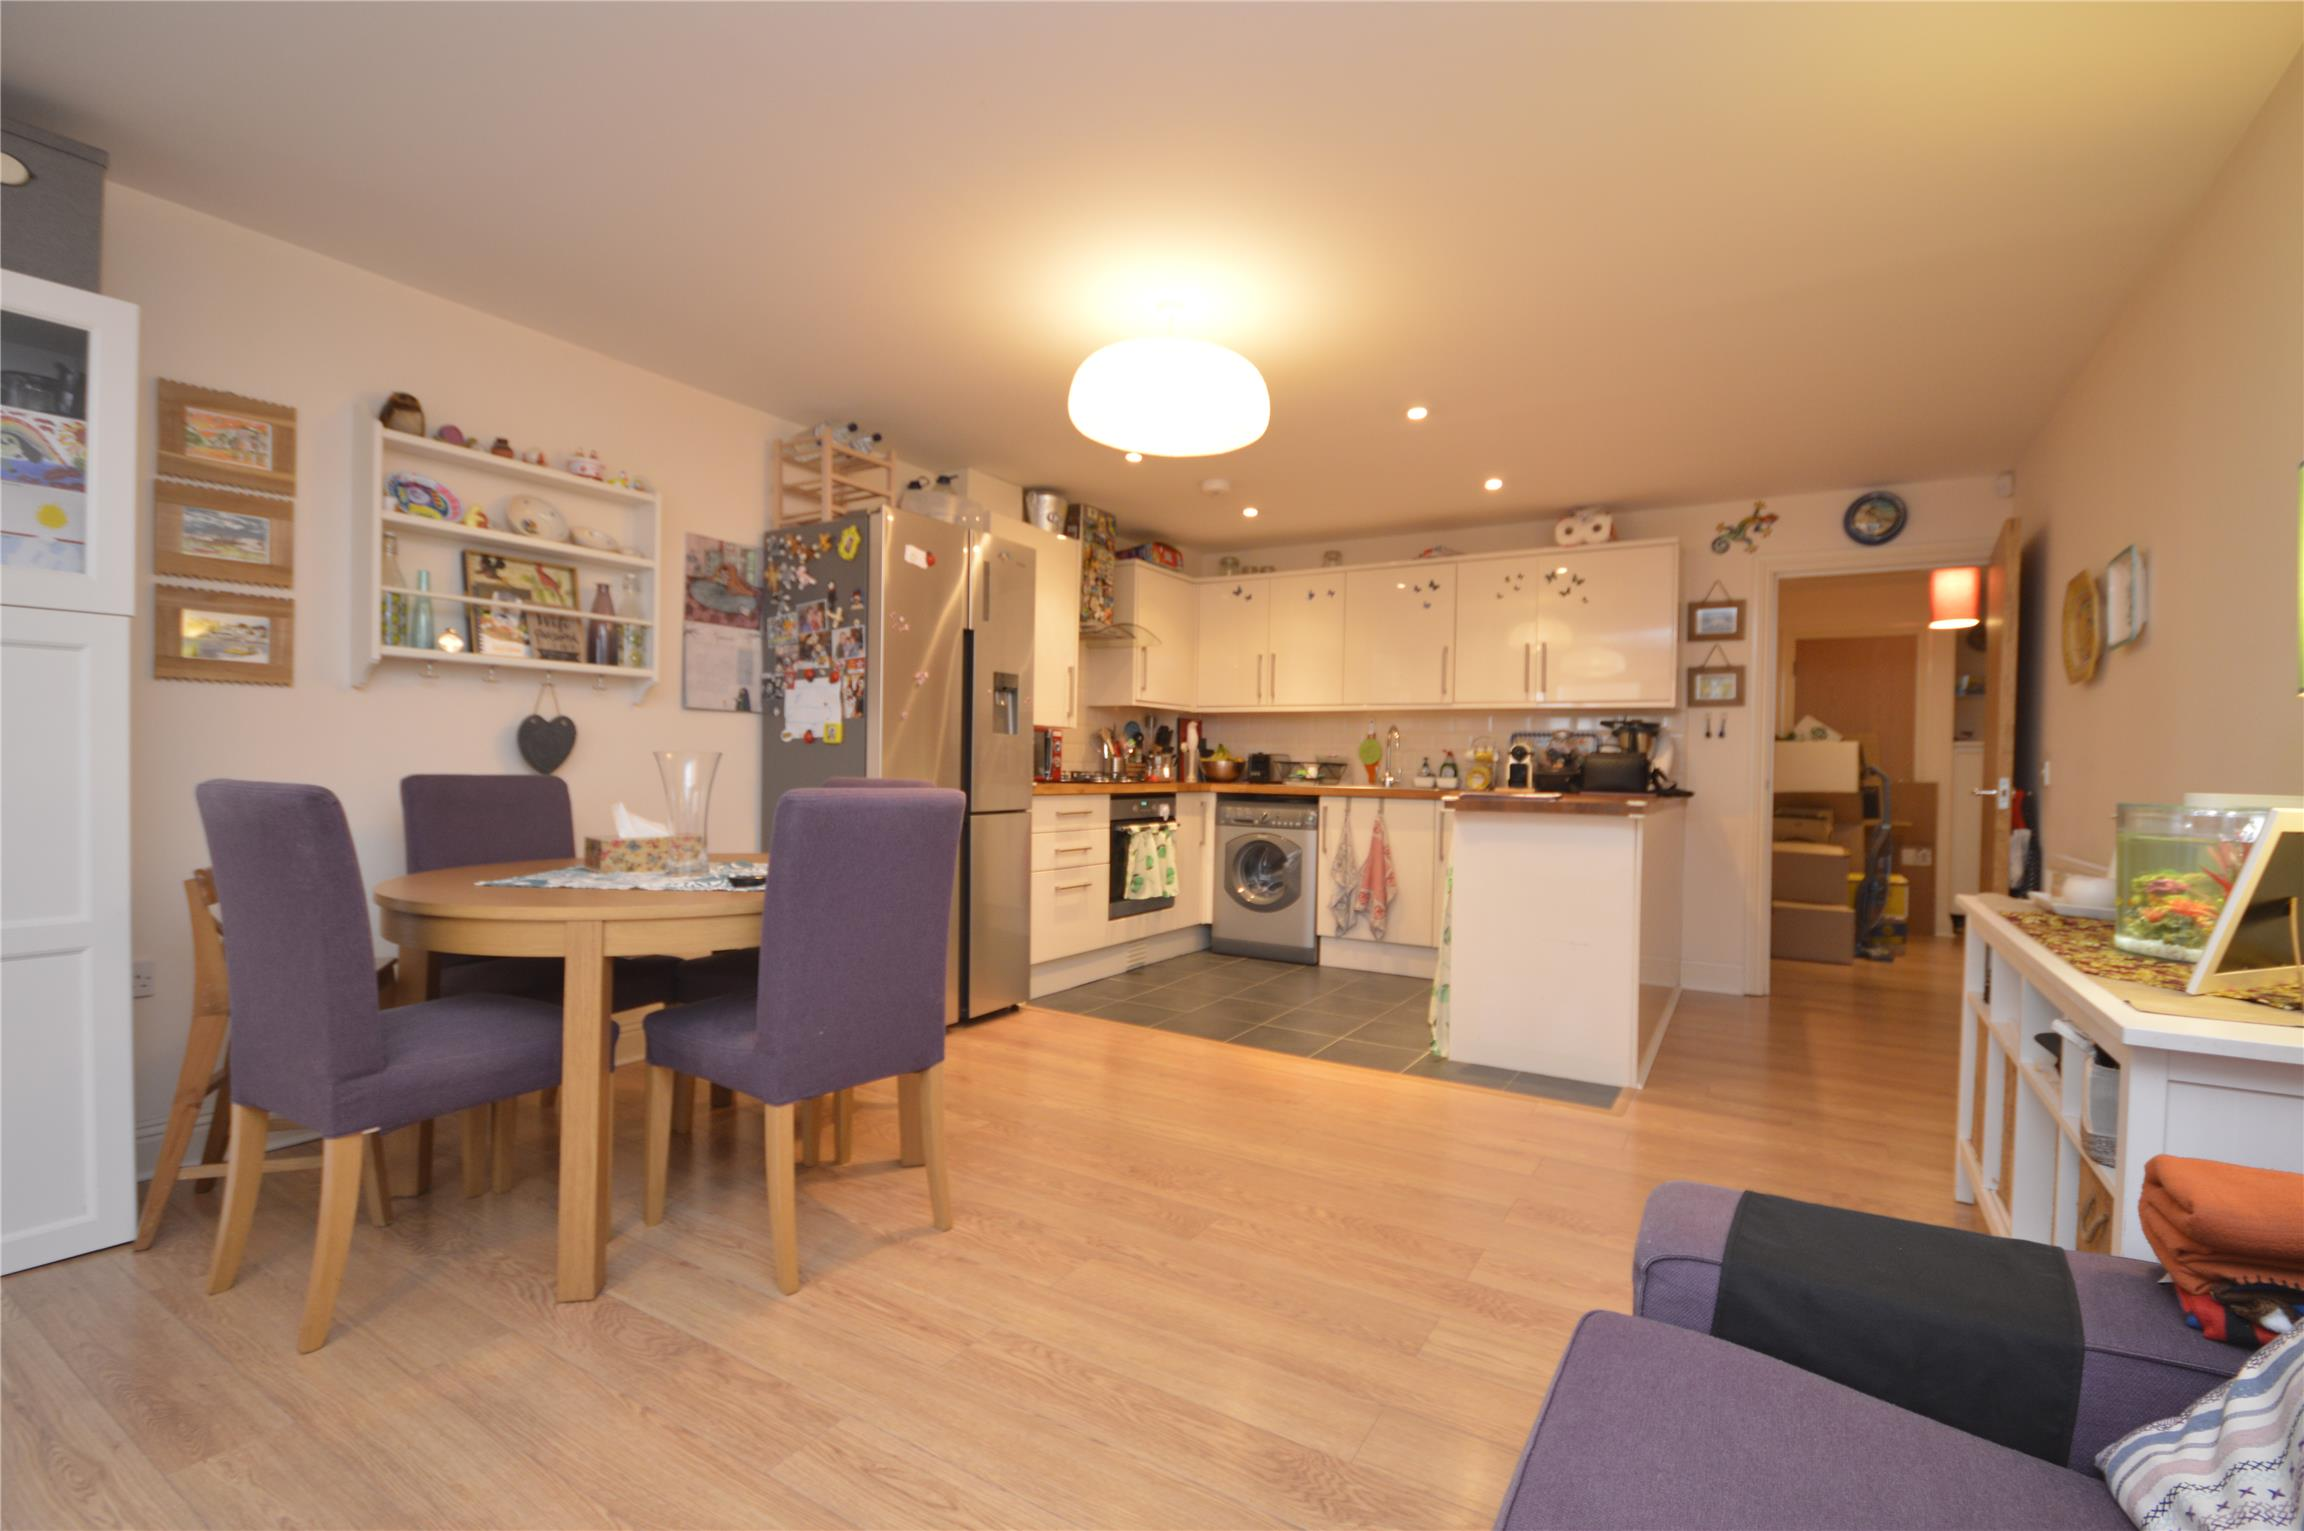 1 room in Shaftesbury, Clapham London, SW11 5QD RoomsLocal image